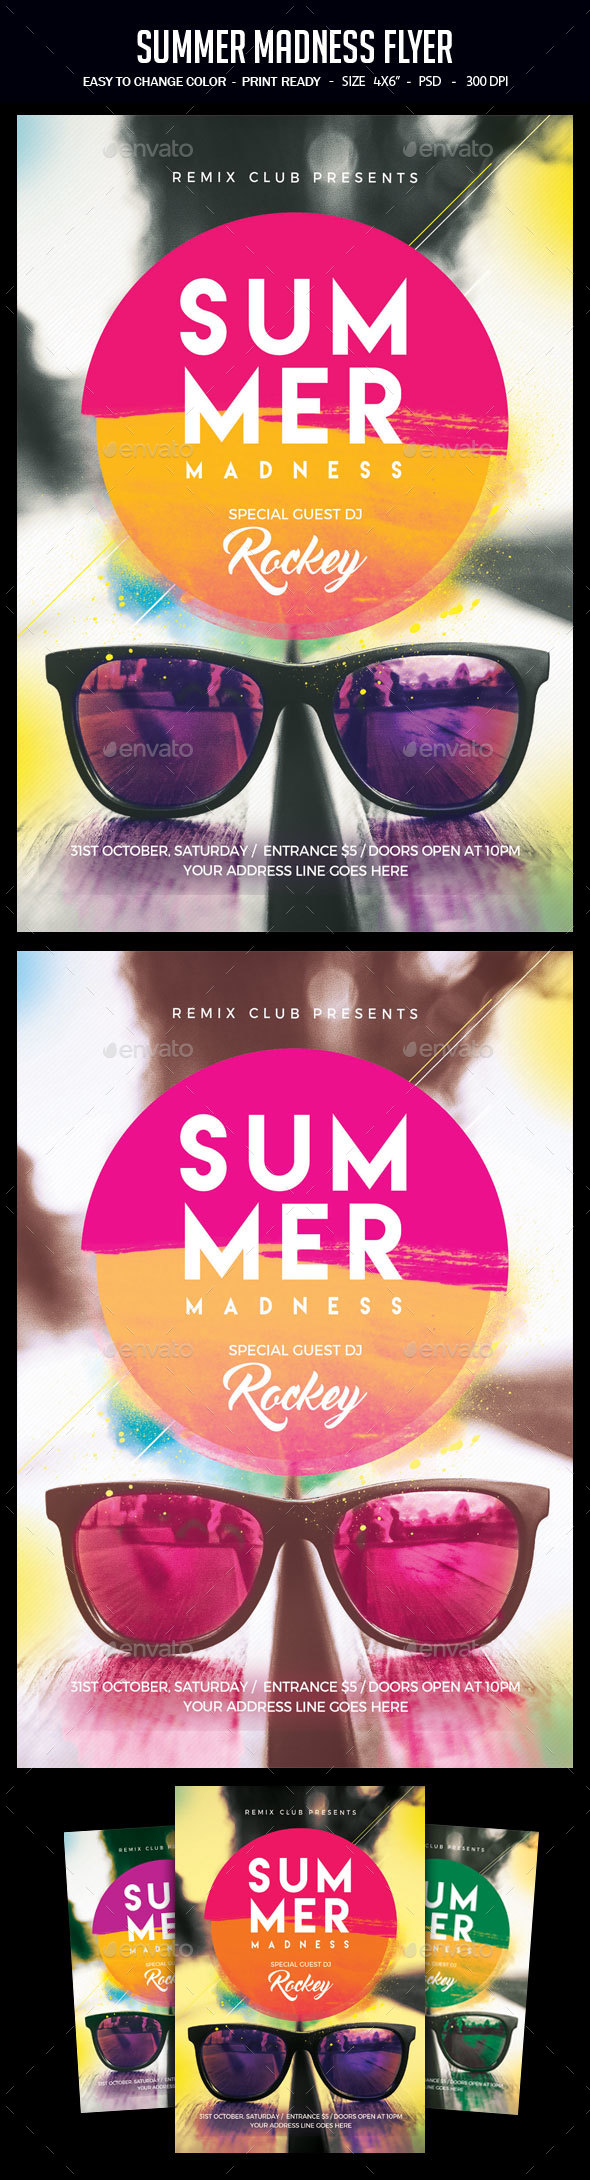 Summer Madness Flyer - Clubs & Parties Events